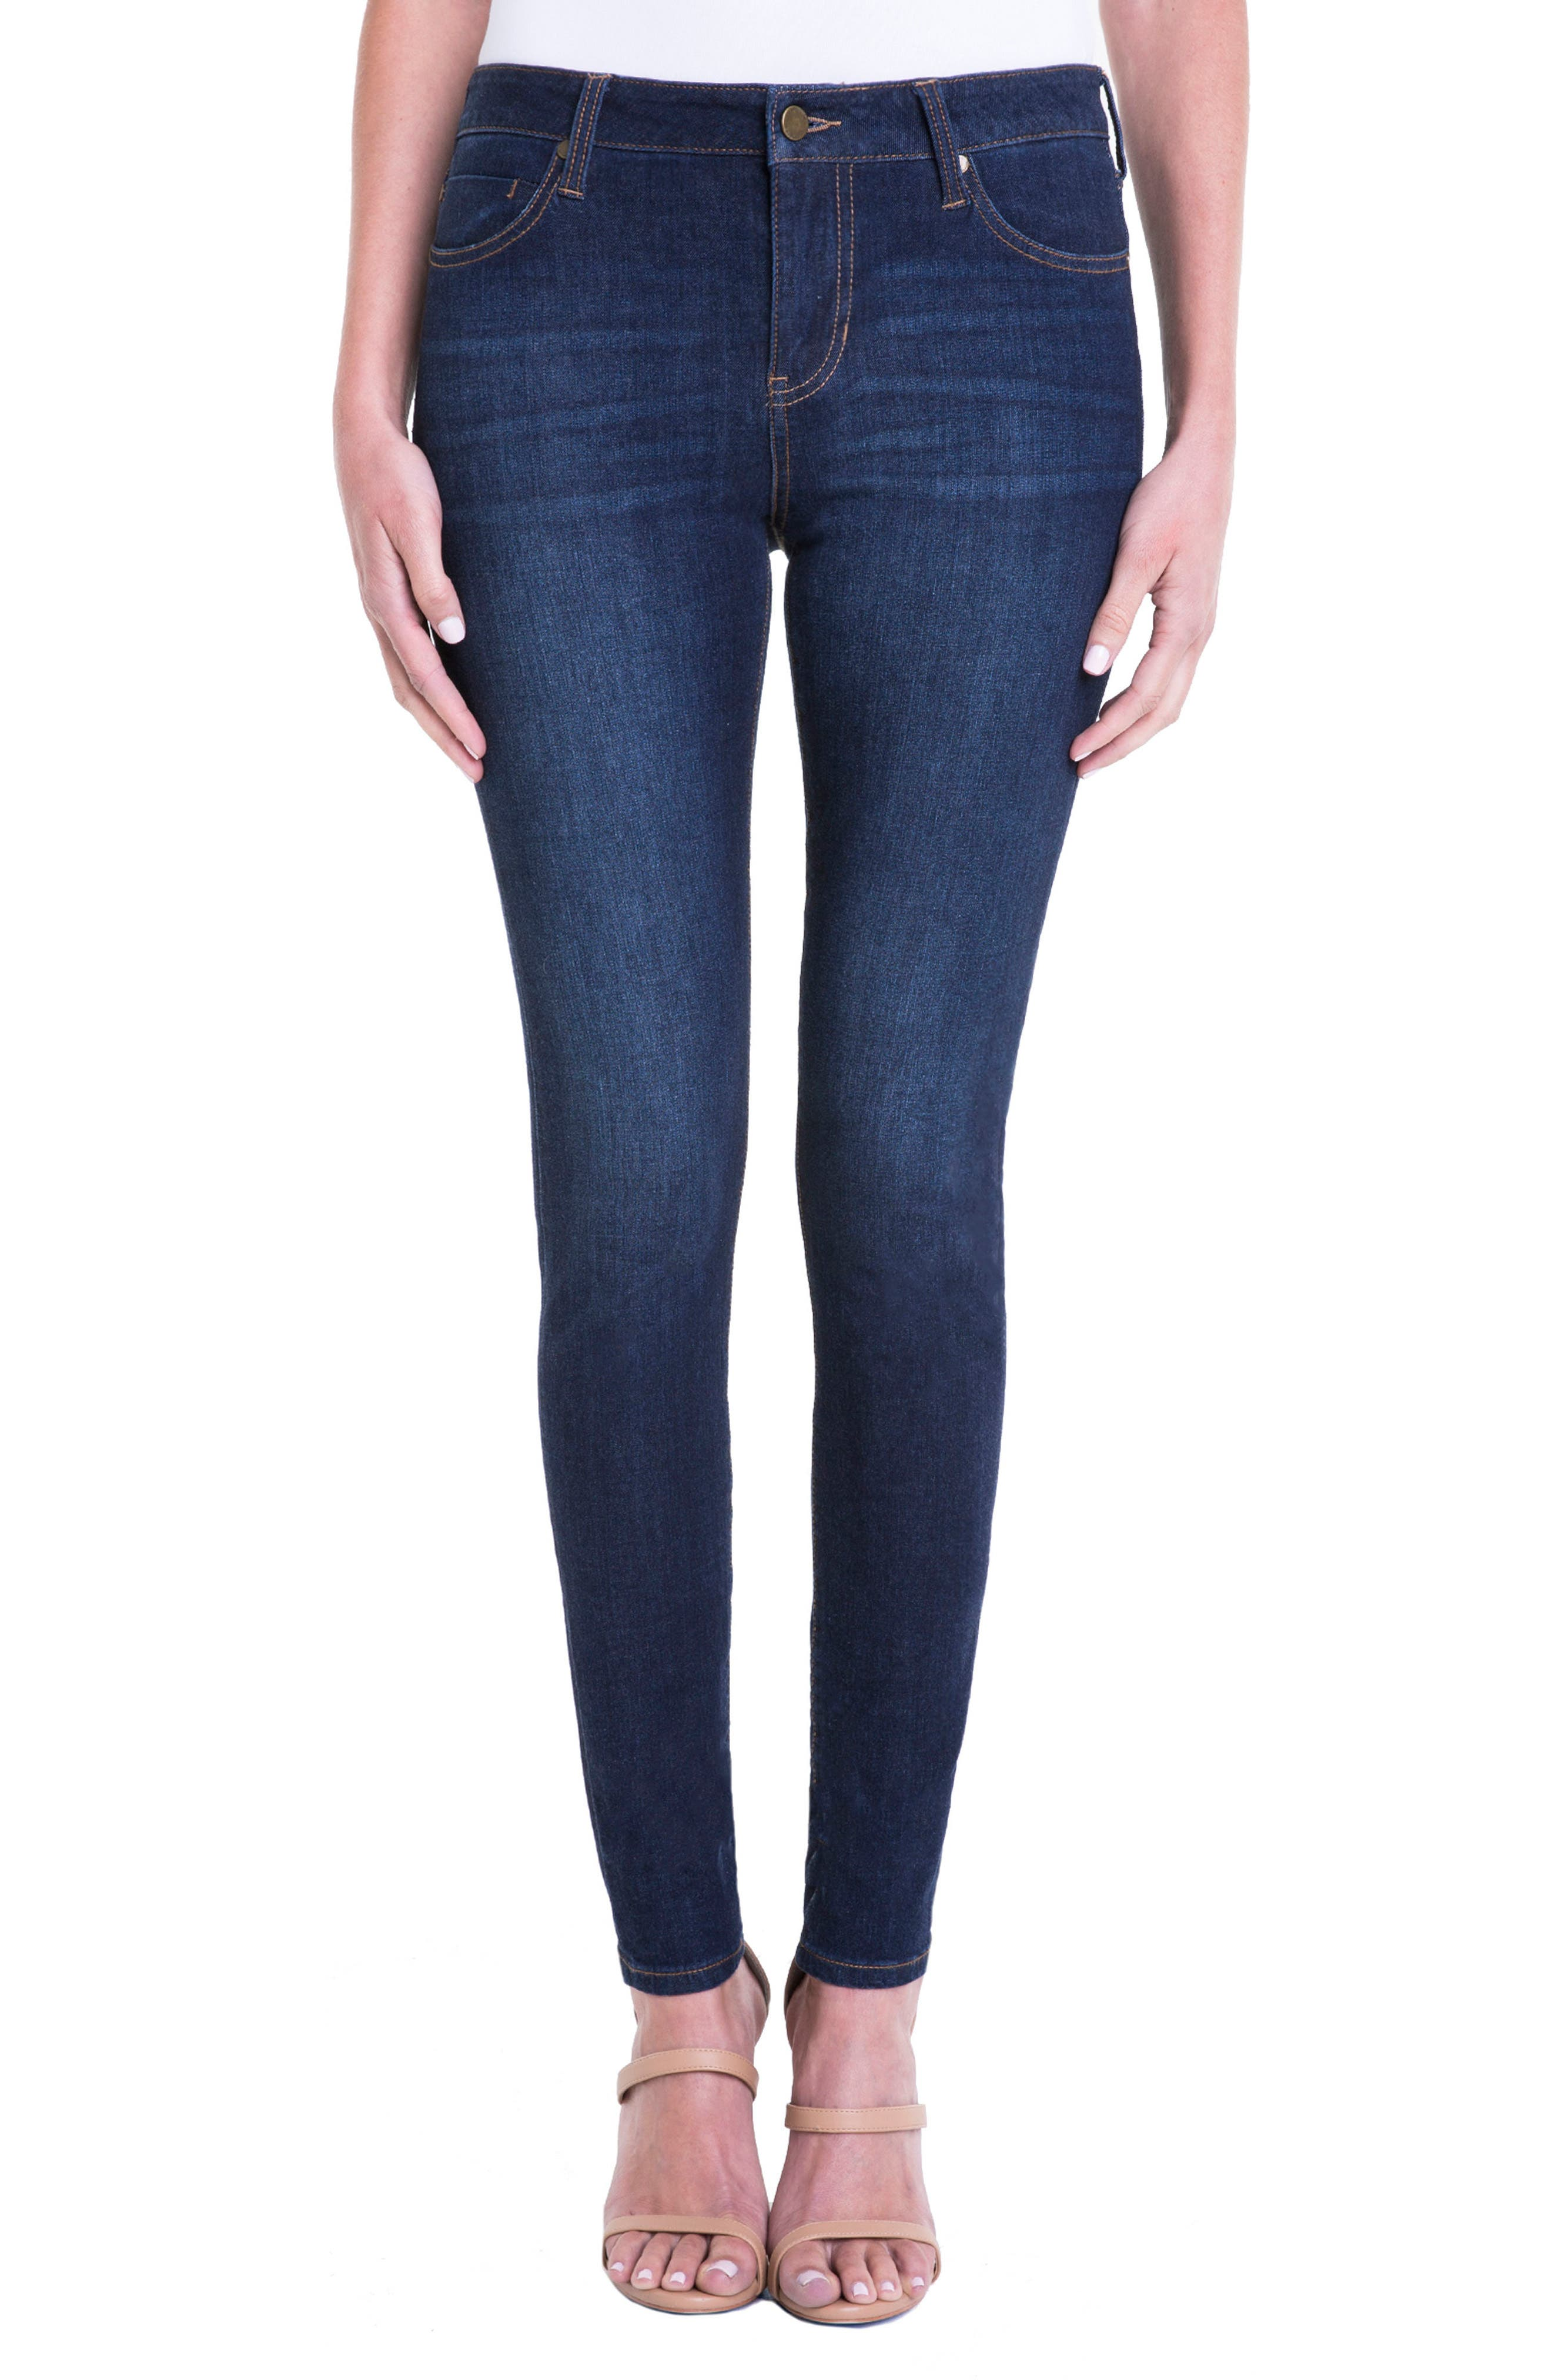 Main Image - Liverpool Jeans Company Abby Stretch Skinny Jeans (Petite)